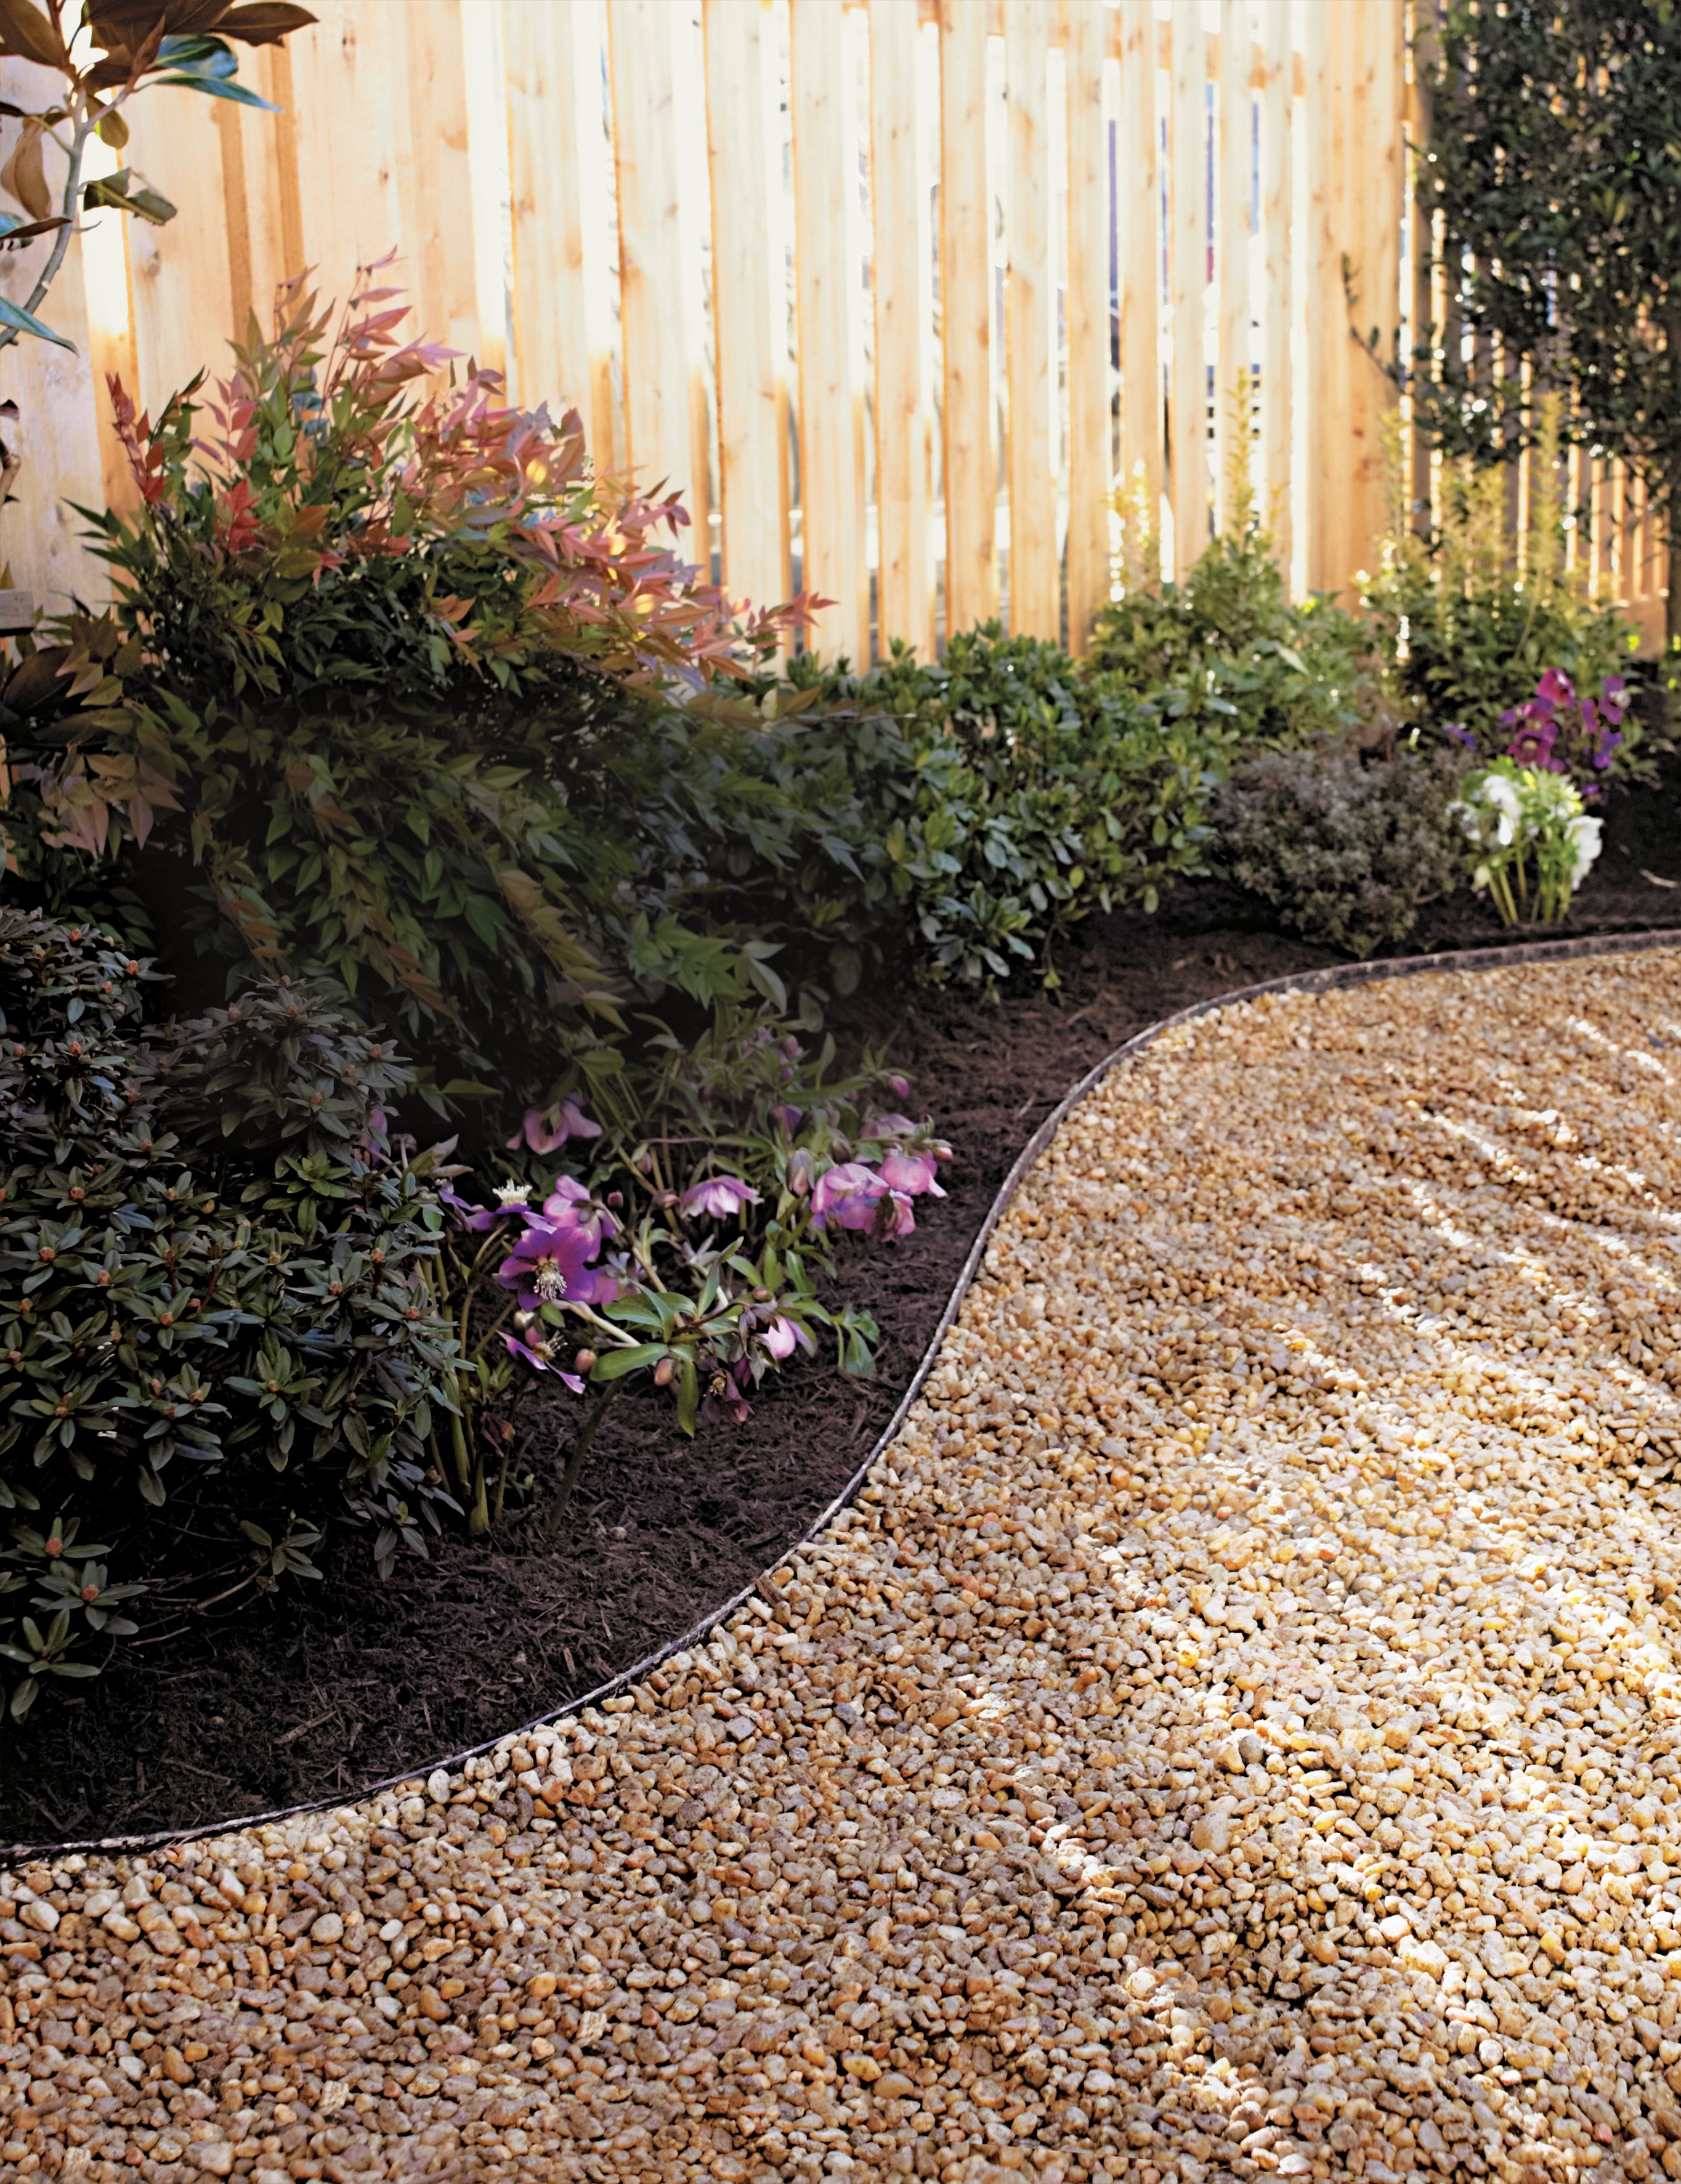 How to make a garden path with gravel - How To Lay A Budget Friendly Gravel Path